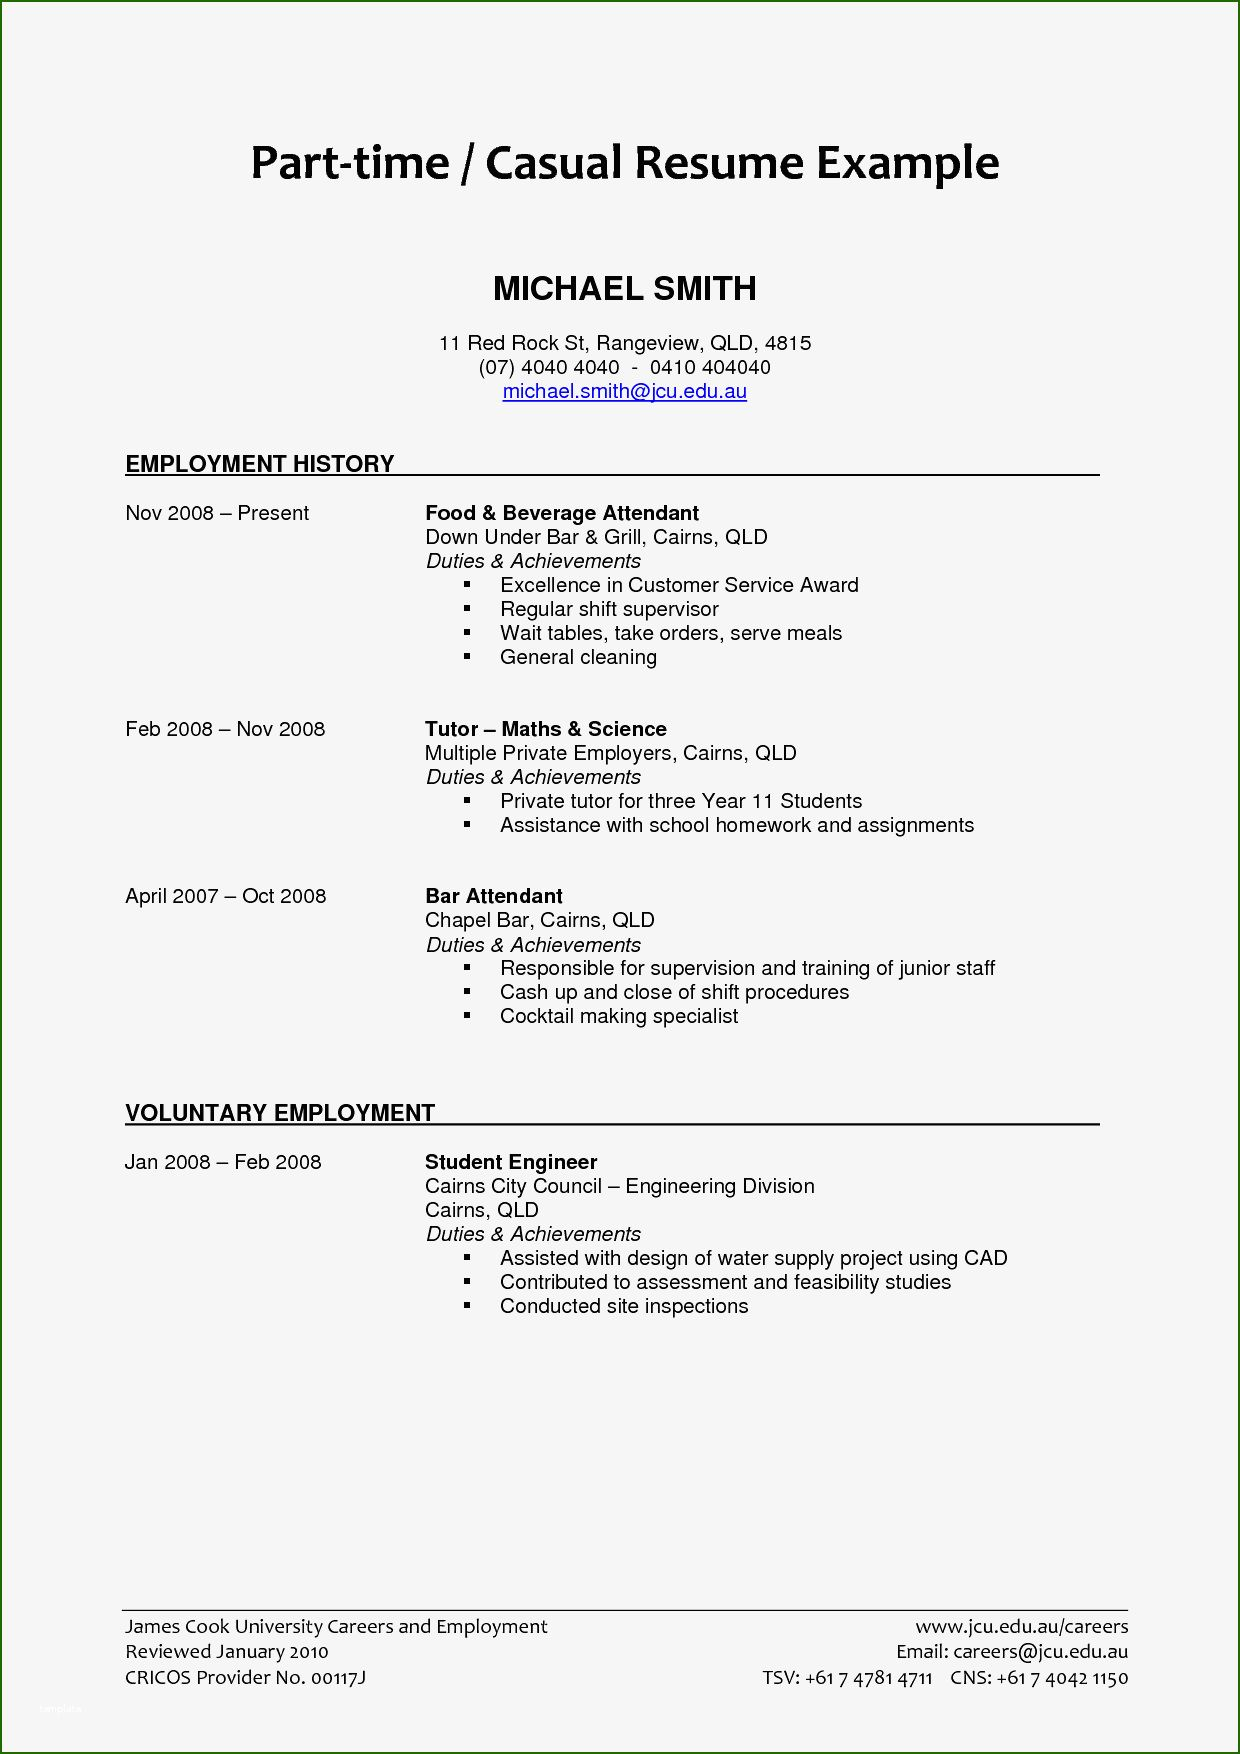 16 Amazing Part Time Job Resume Template in 2020 Job